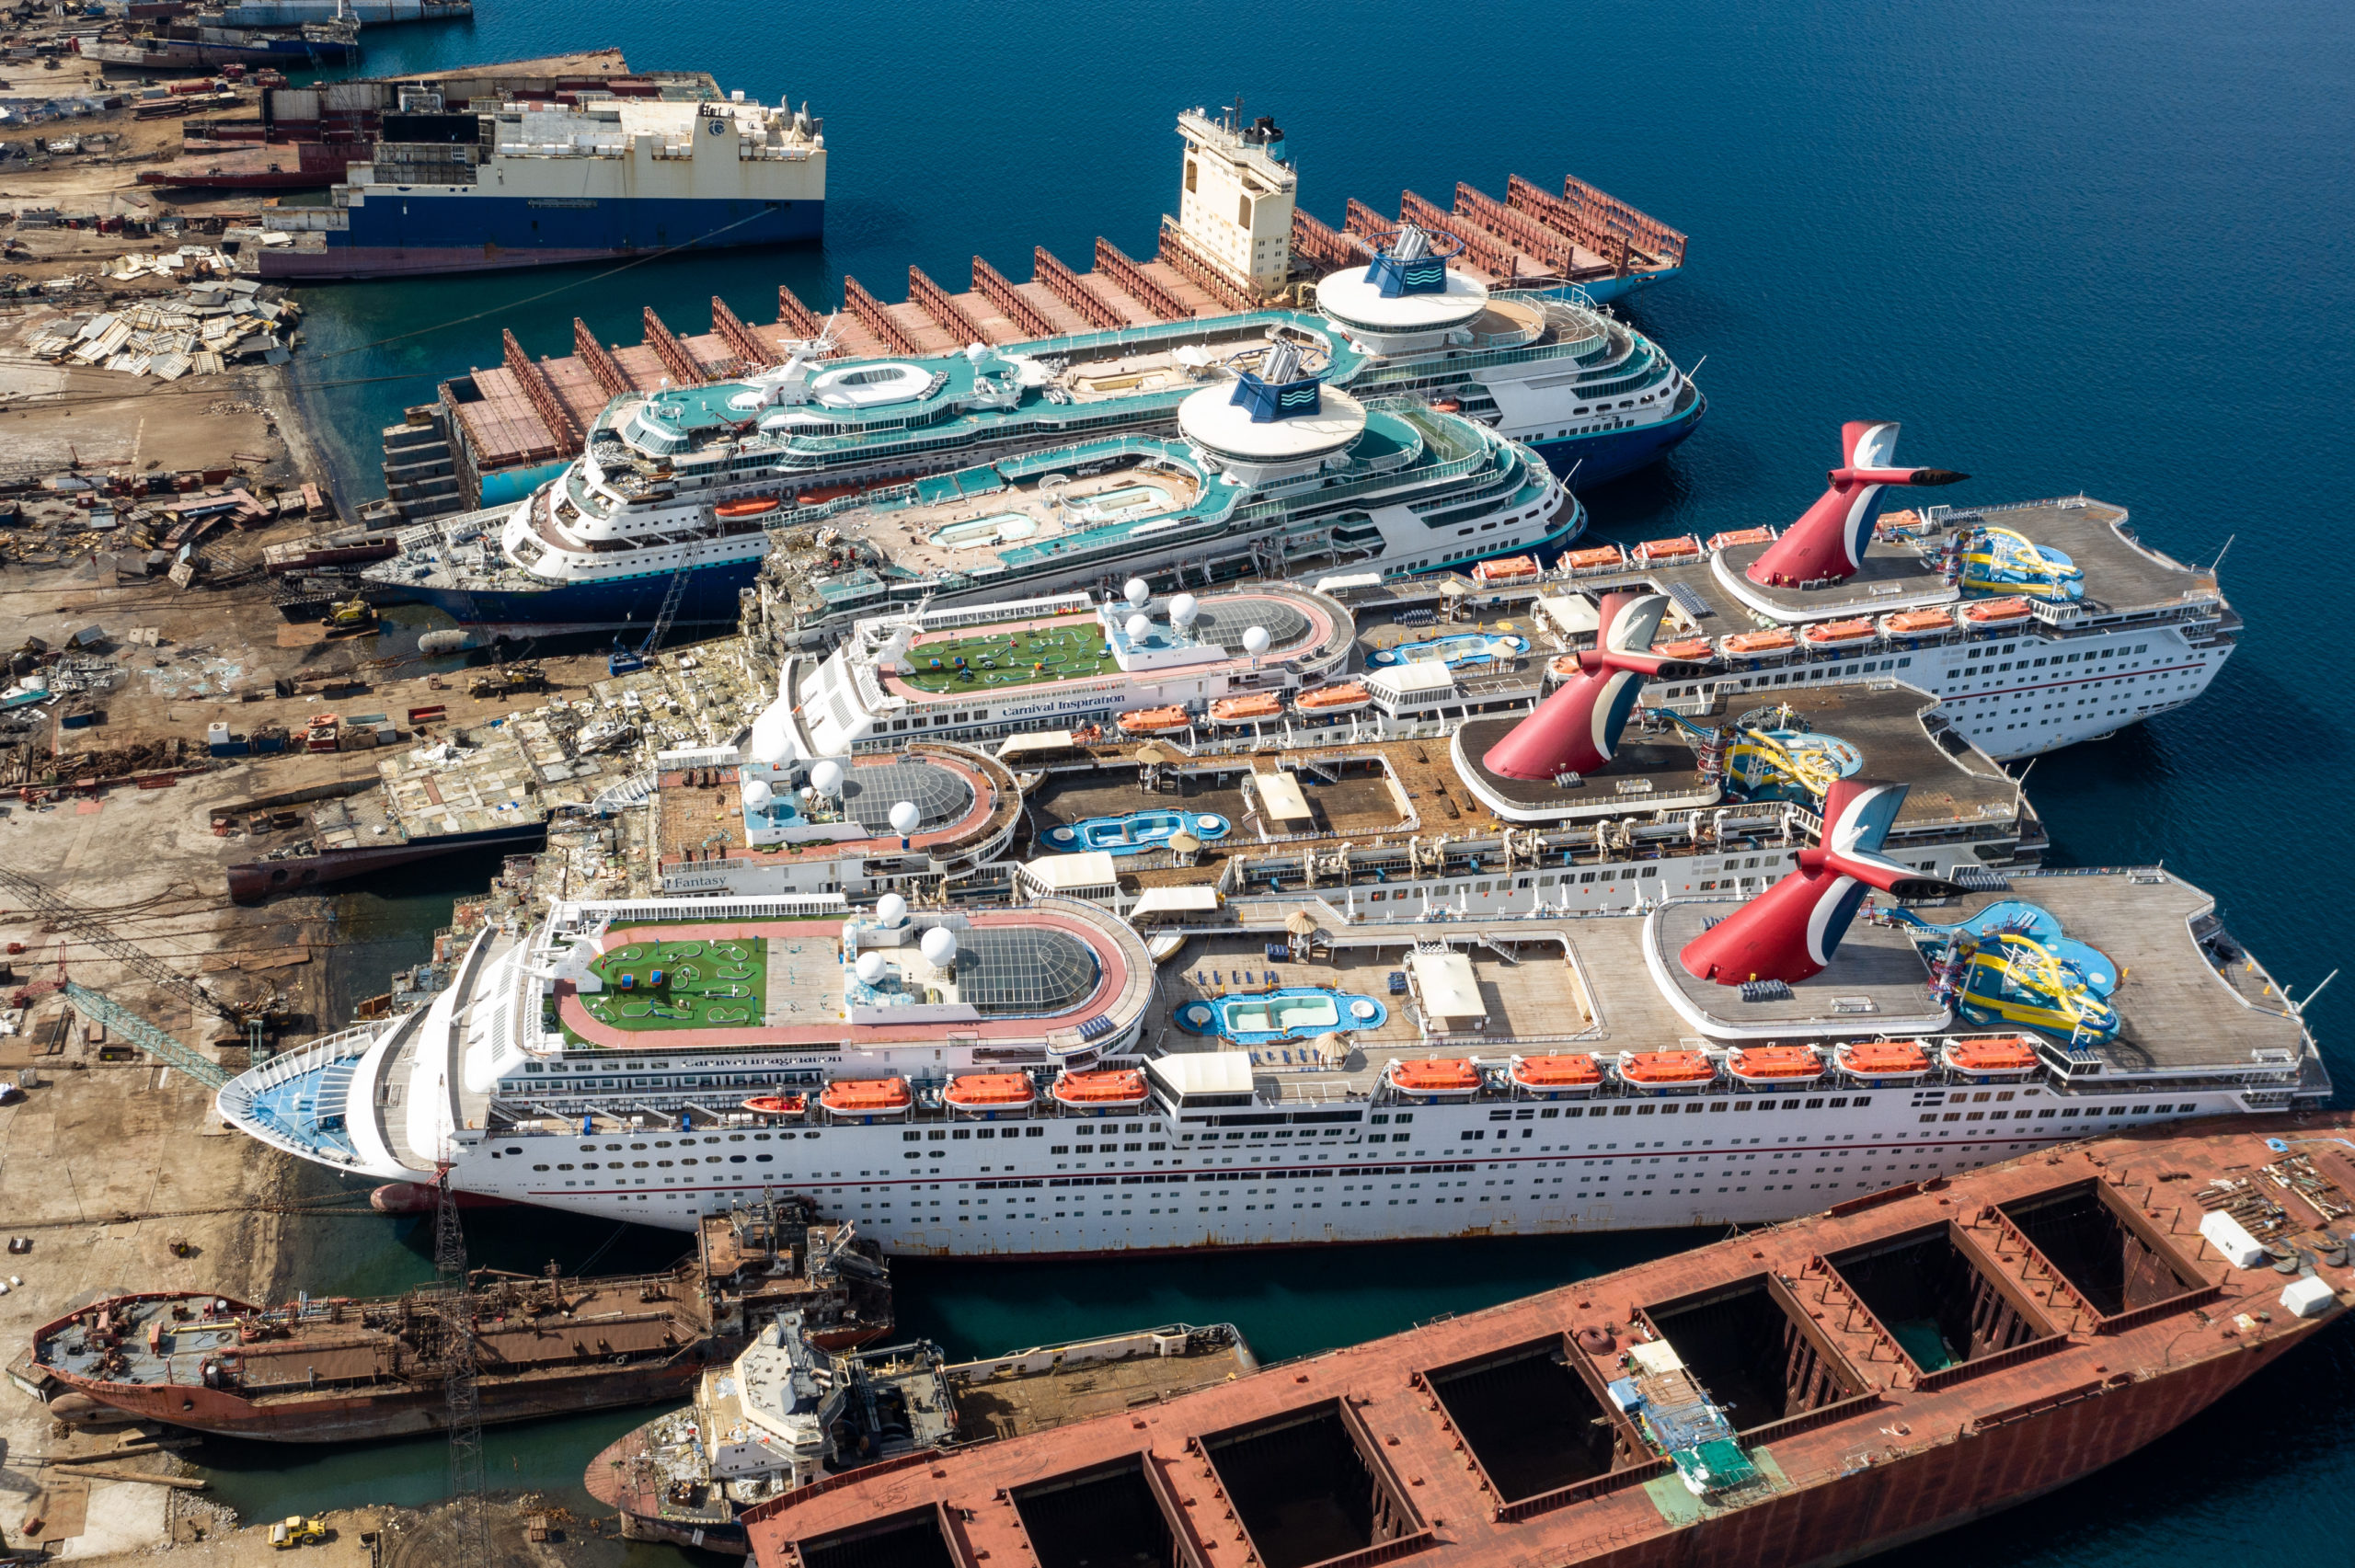 IZMIR, TURKEY - OCTOBER 02: In this aerial view from a drone, five luxury cruise ships are seen being broken down for scrap metal at the Aliaga ship recycling port on October 02, 2020 in Izmir, Turkey. With the global coronavirus pandemic pushing the multi-billion dollar cruise industry into crisis, some cruise operators have been forced to cut losses and retire ships earlier than planned. The cruise industry has been one of the hardest hit industries with public confidence in cruise holidays plummeting after a series of outbreaks occurred on cruise liners as the pandemic spread. The crisis however has bolstered the years intake of ships at the Aliaga ship recycling port with business up thirty percent on the previous year. (Photo by Chris McGrath/Getty Images)